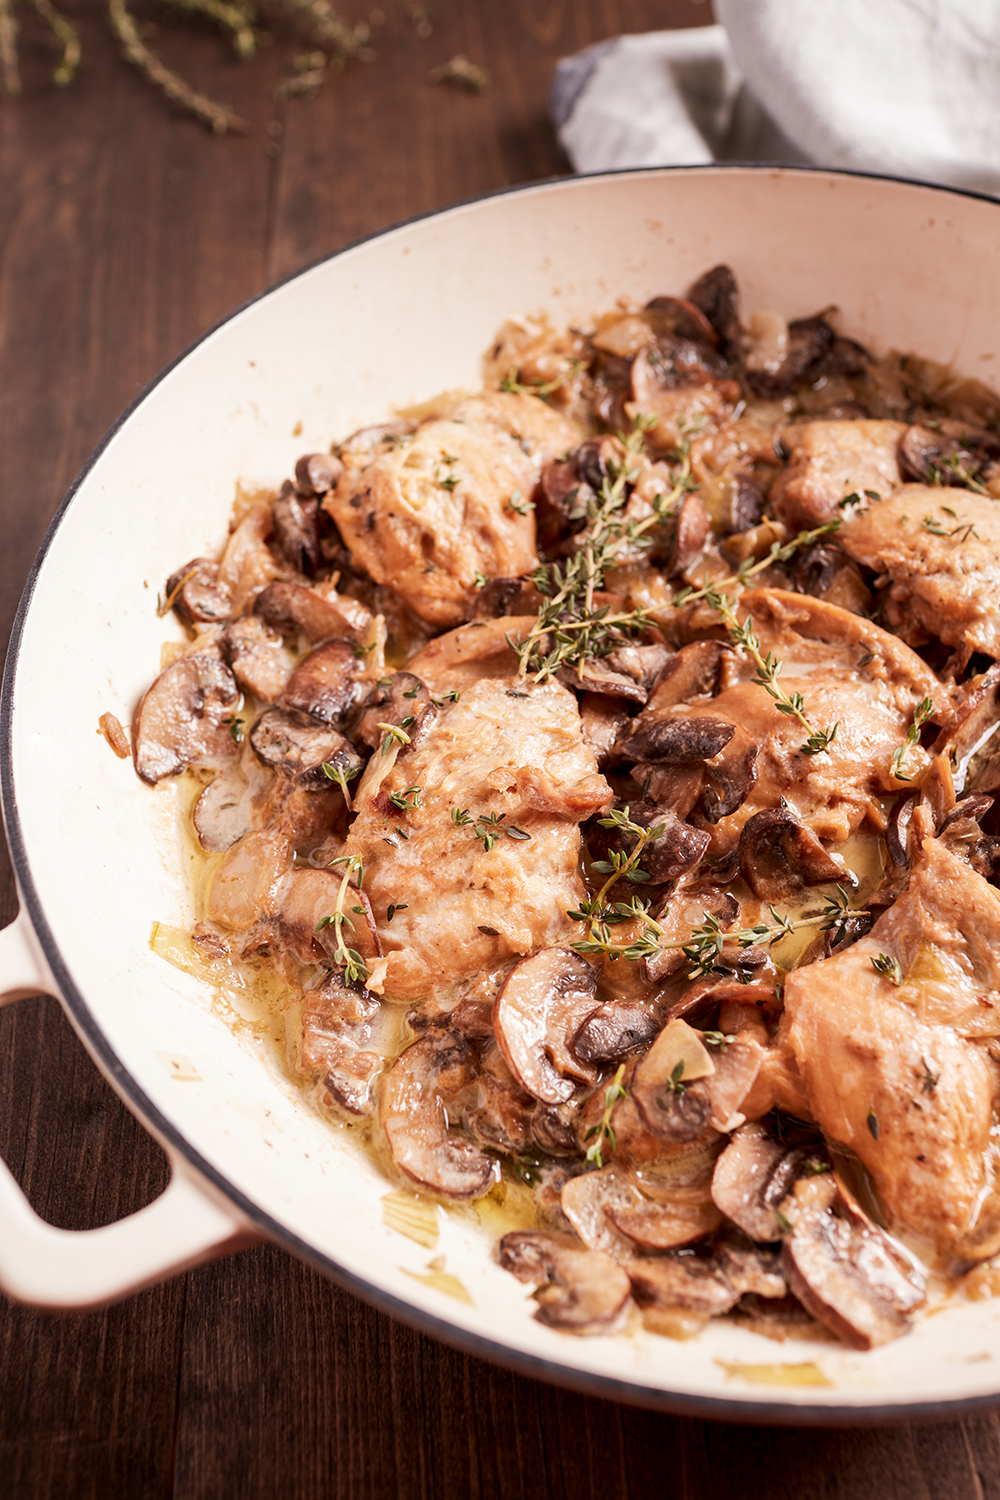 Creamy chicken with mushrooms and thyme